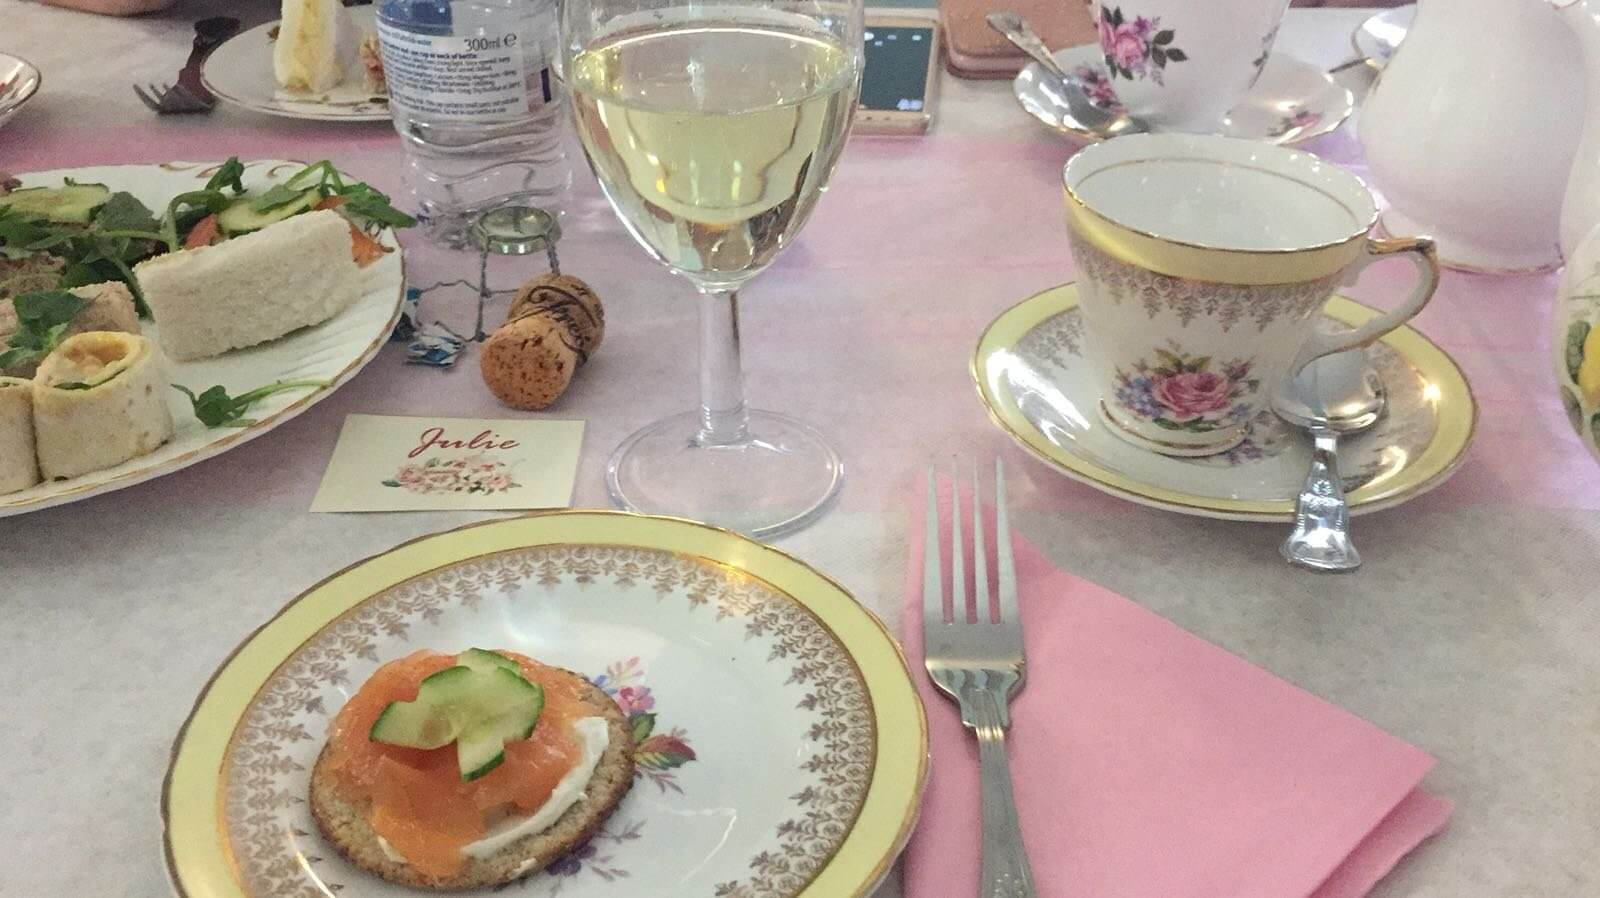 Photos shows smoked salmon sandwiches on a vintage china plate